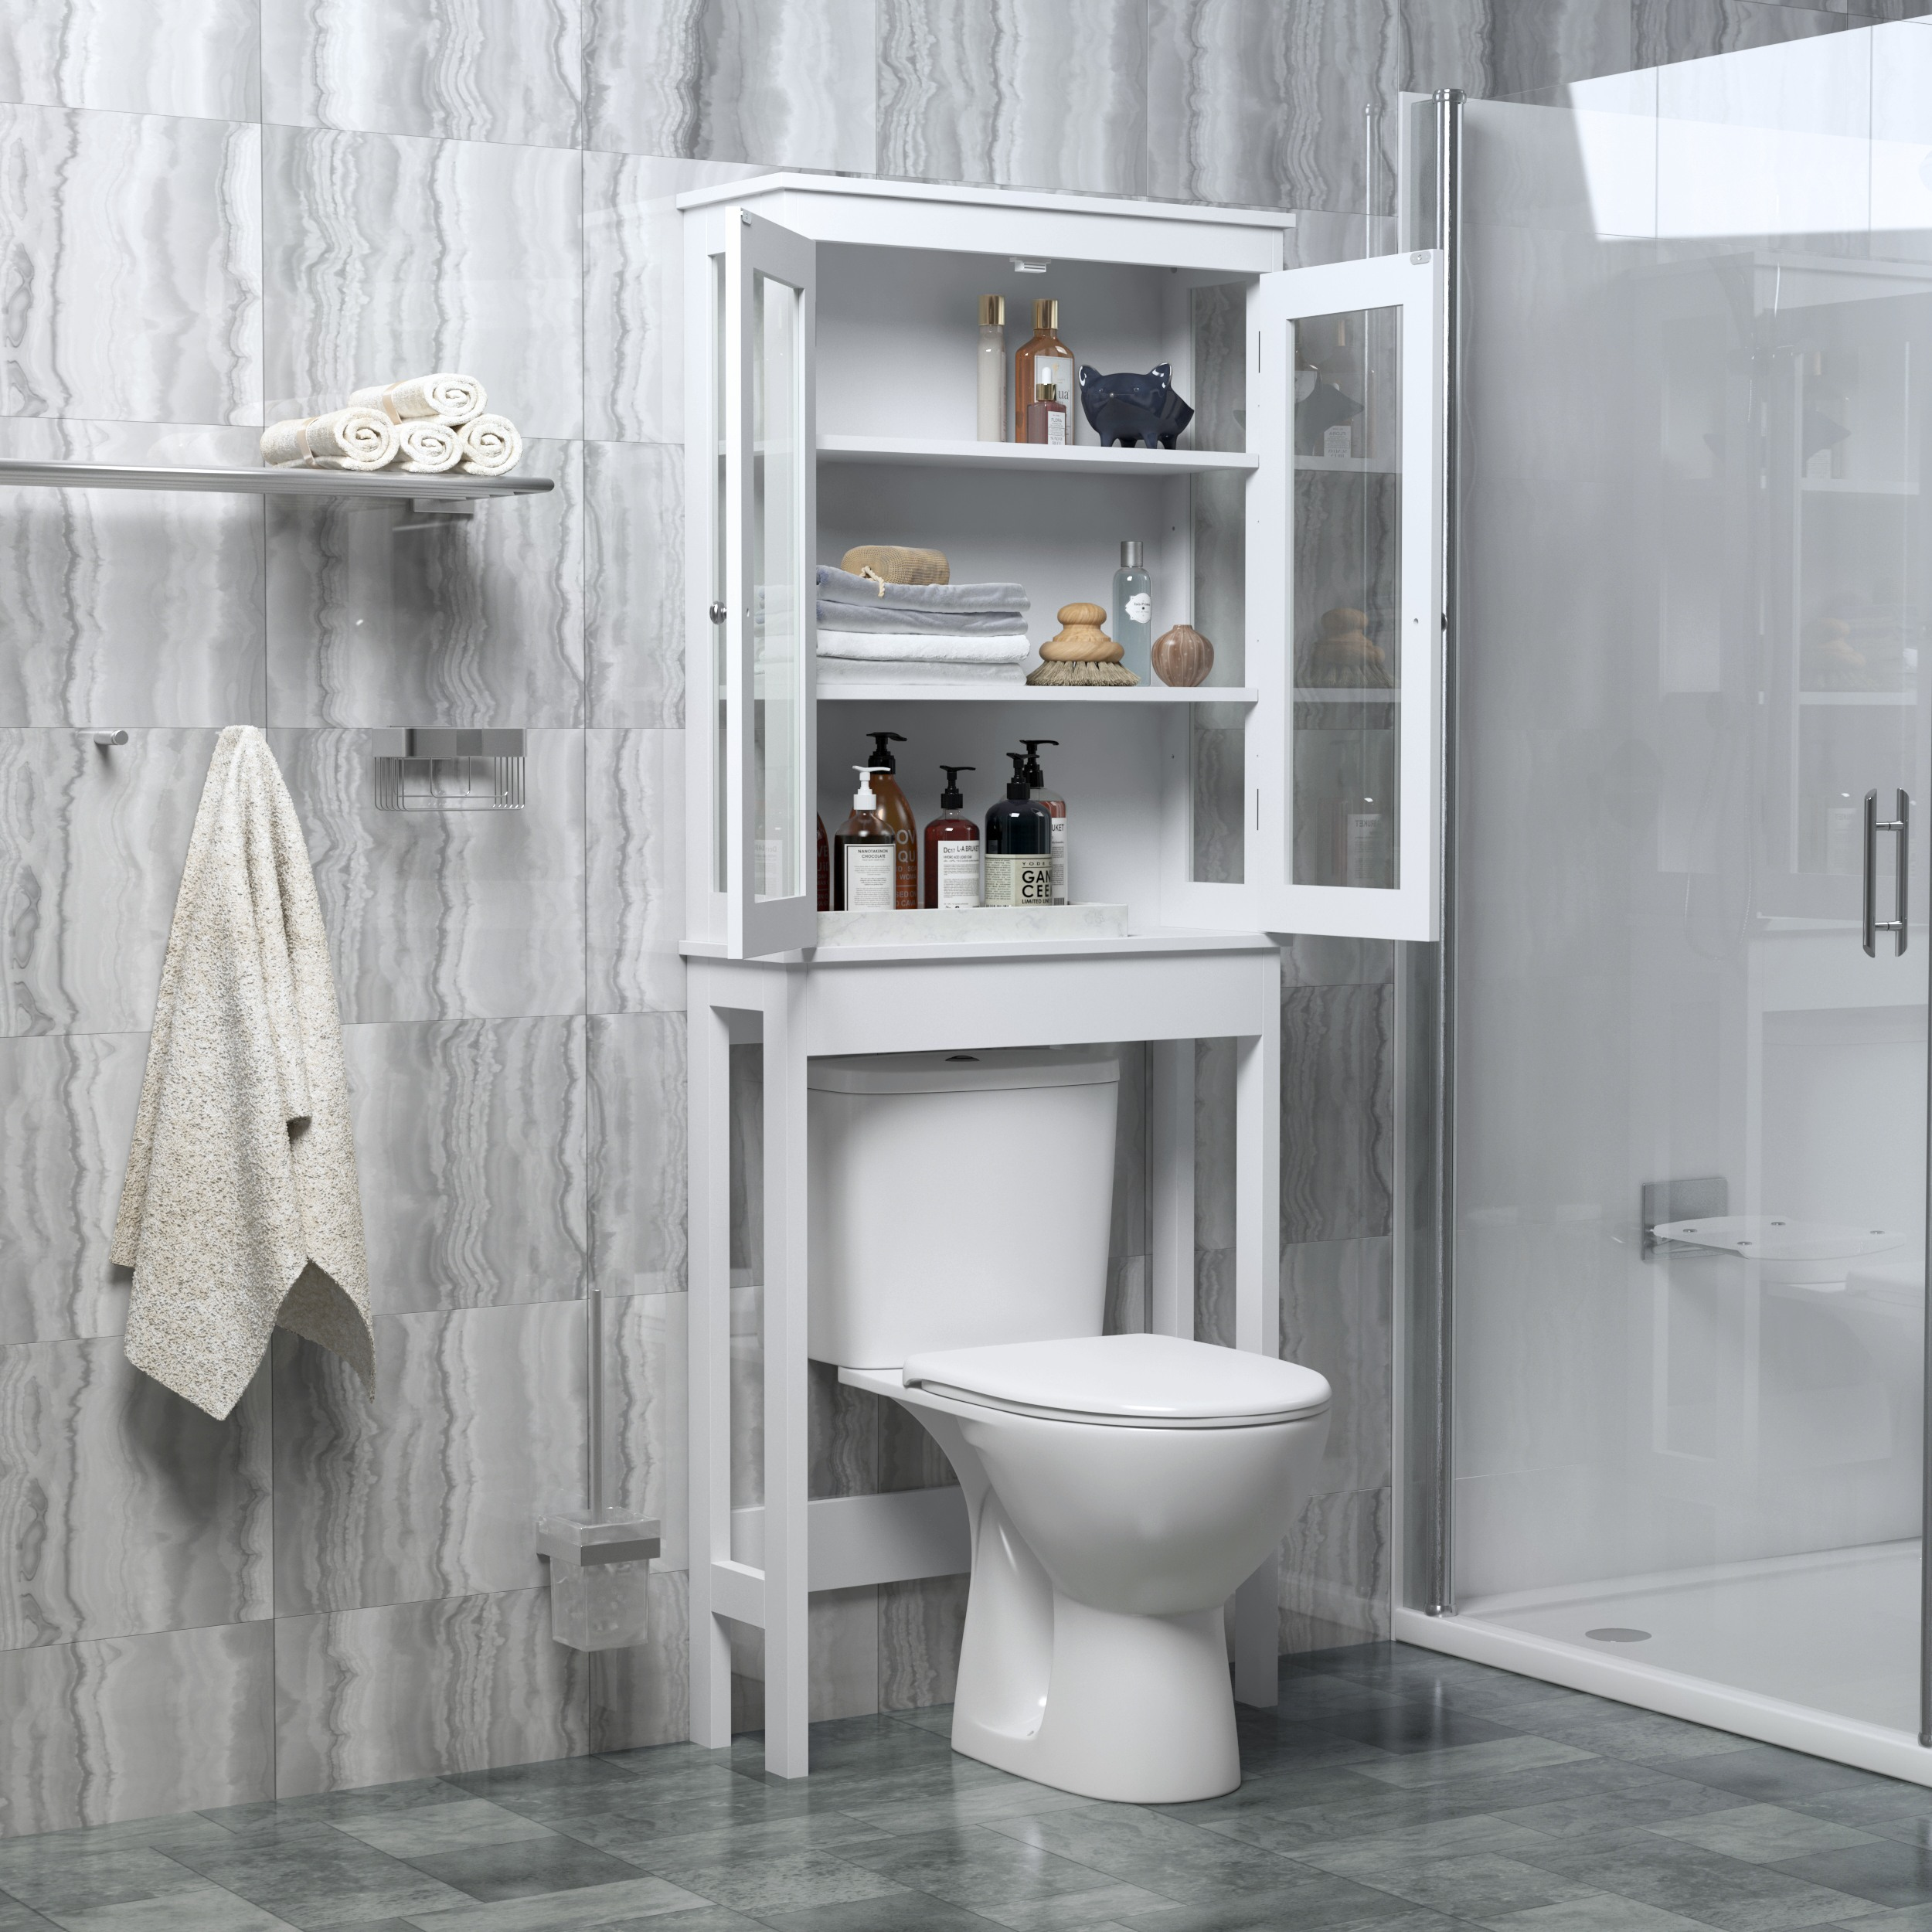 Bathroom Cabinet Storage Cabinet Wall Cabinet, Over the ...